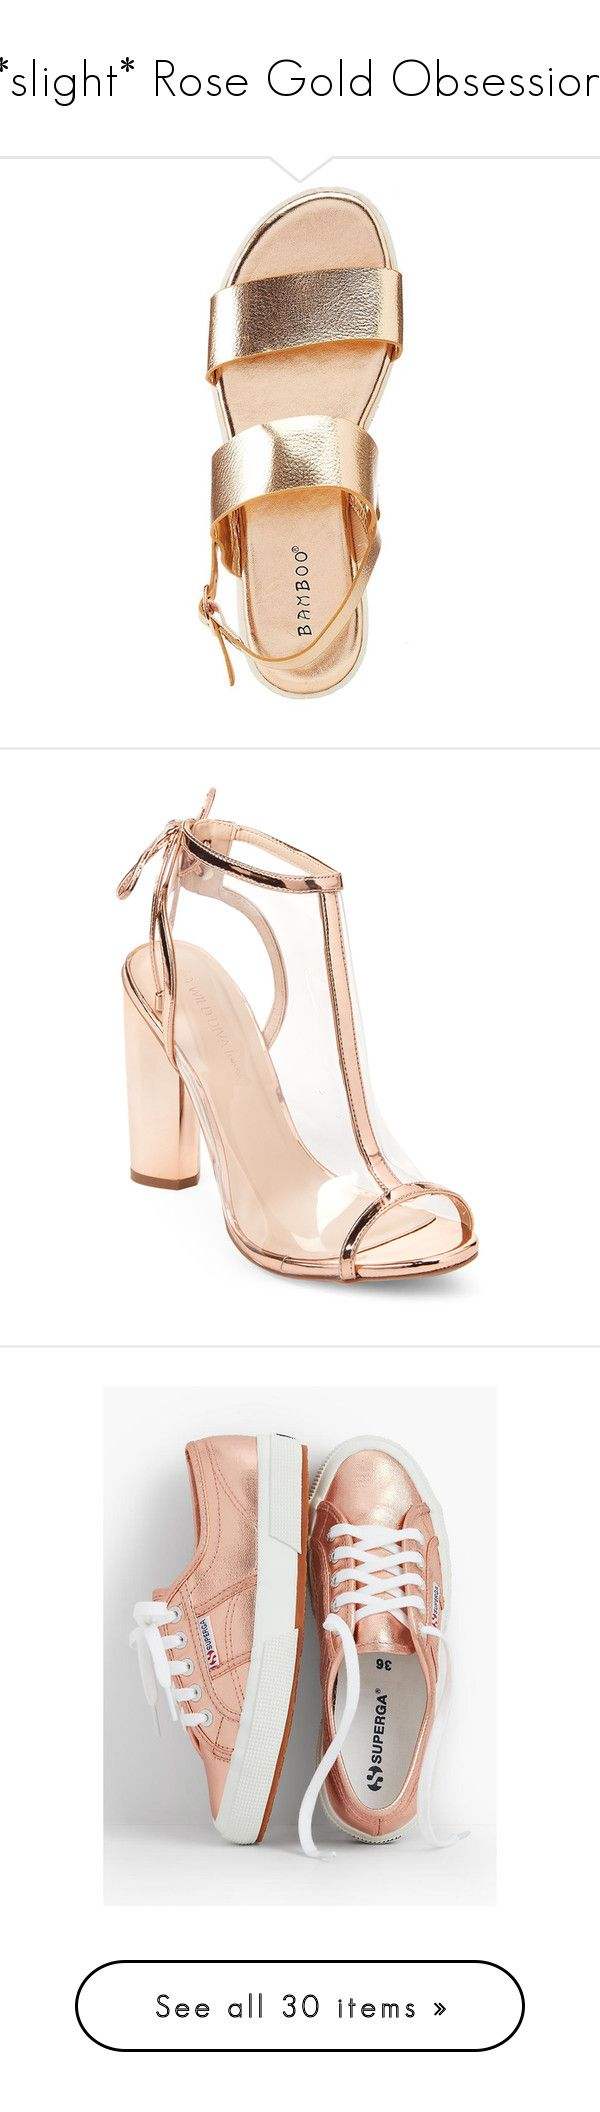 """""""*slight* Rose Gold Obsession"""" by laurengallop ❤ liked on Polyvore featuring shoes, sandals, rose gold, birkenstock, metallic leather shoes, genuine leather shoes, birkenstock sandals, metallic leather sandals, glitter wedge sandals and wedge heel sandals"""